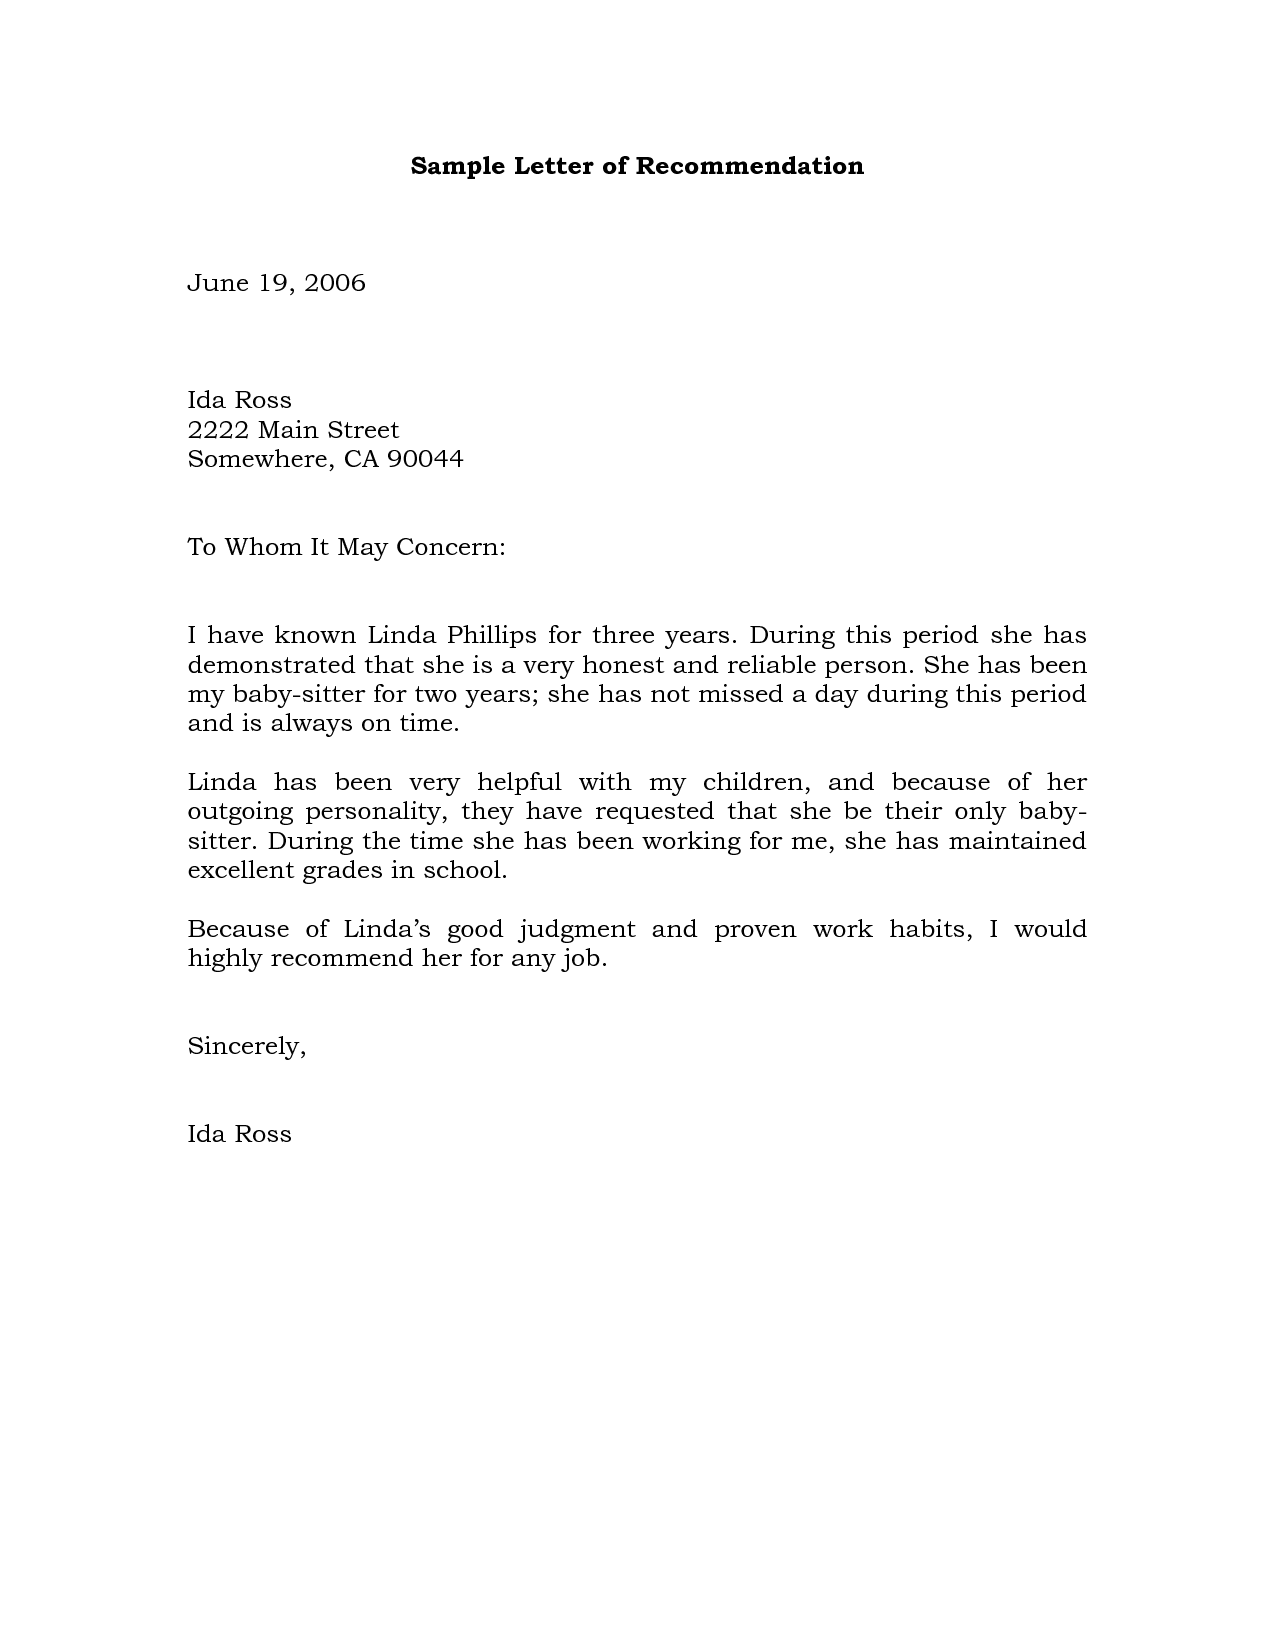 Sample Recommendation Letter Example  Format Of Recommendation Letter From Employer